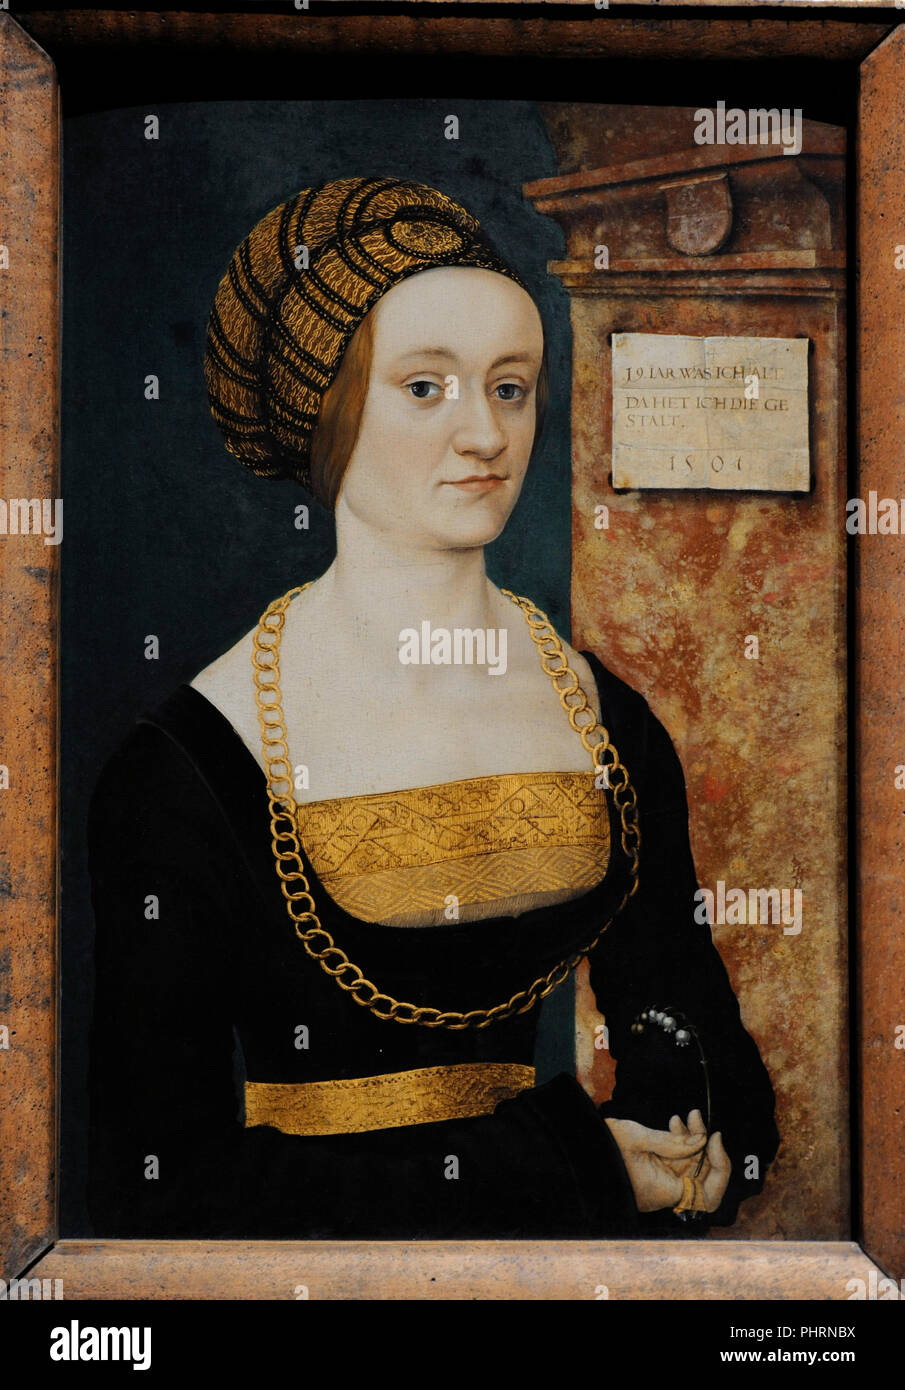 Hans Burgkmair the Elder (1473-1531). German painter and printmaker. Portrait of Barbara Schellenberger, 1505-1507. Wallraf-Richartz Museum. Cologne. Germany. - Stock Image